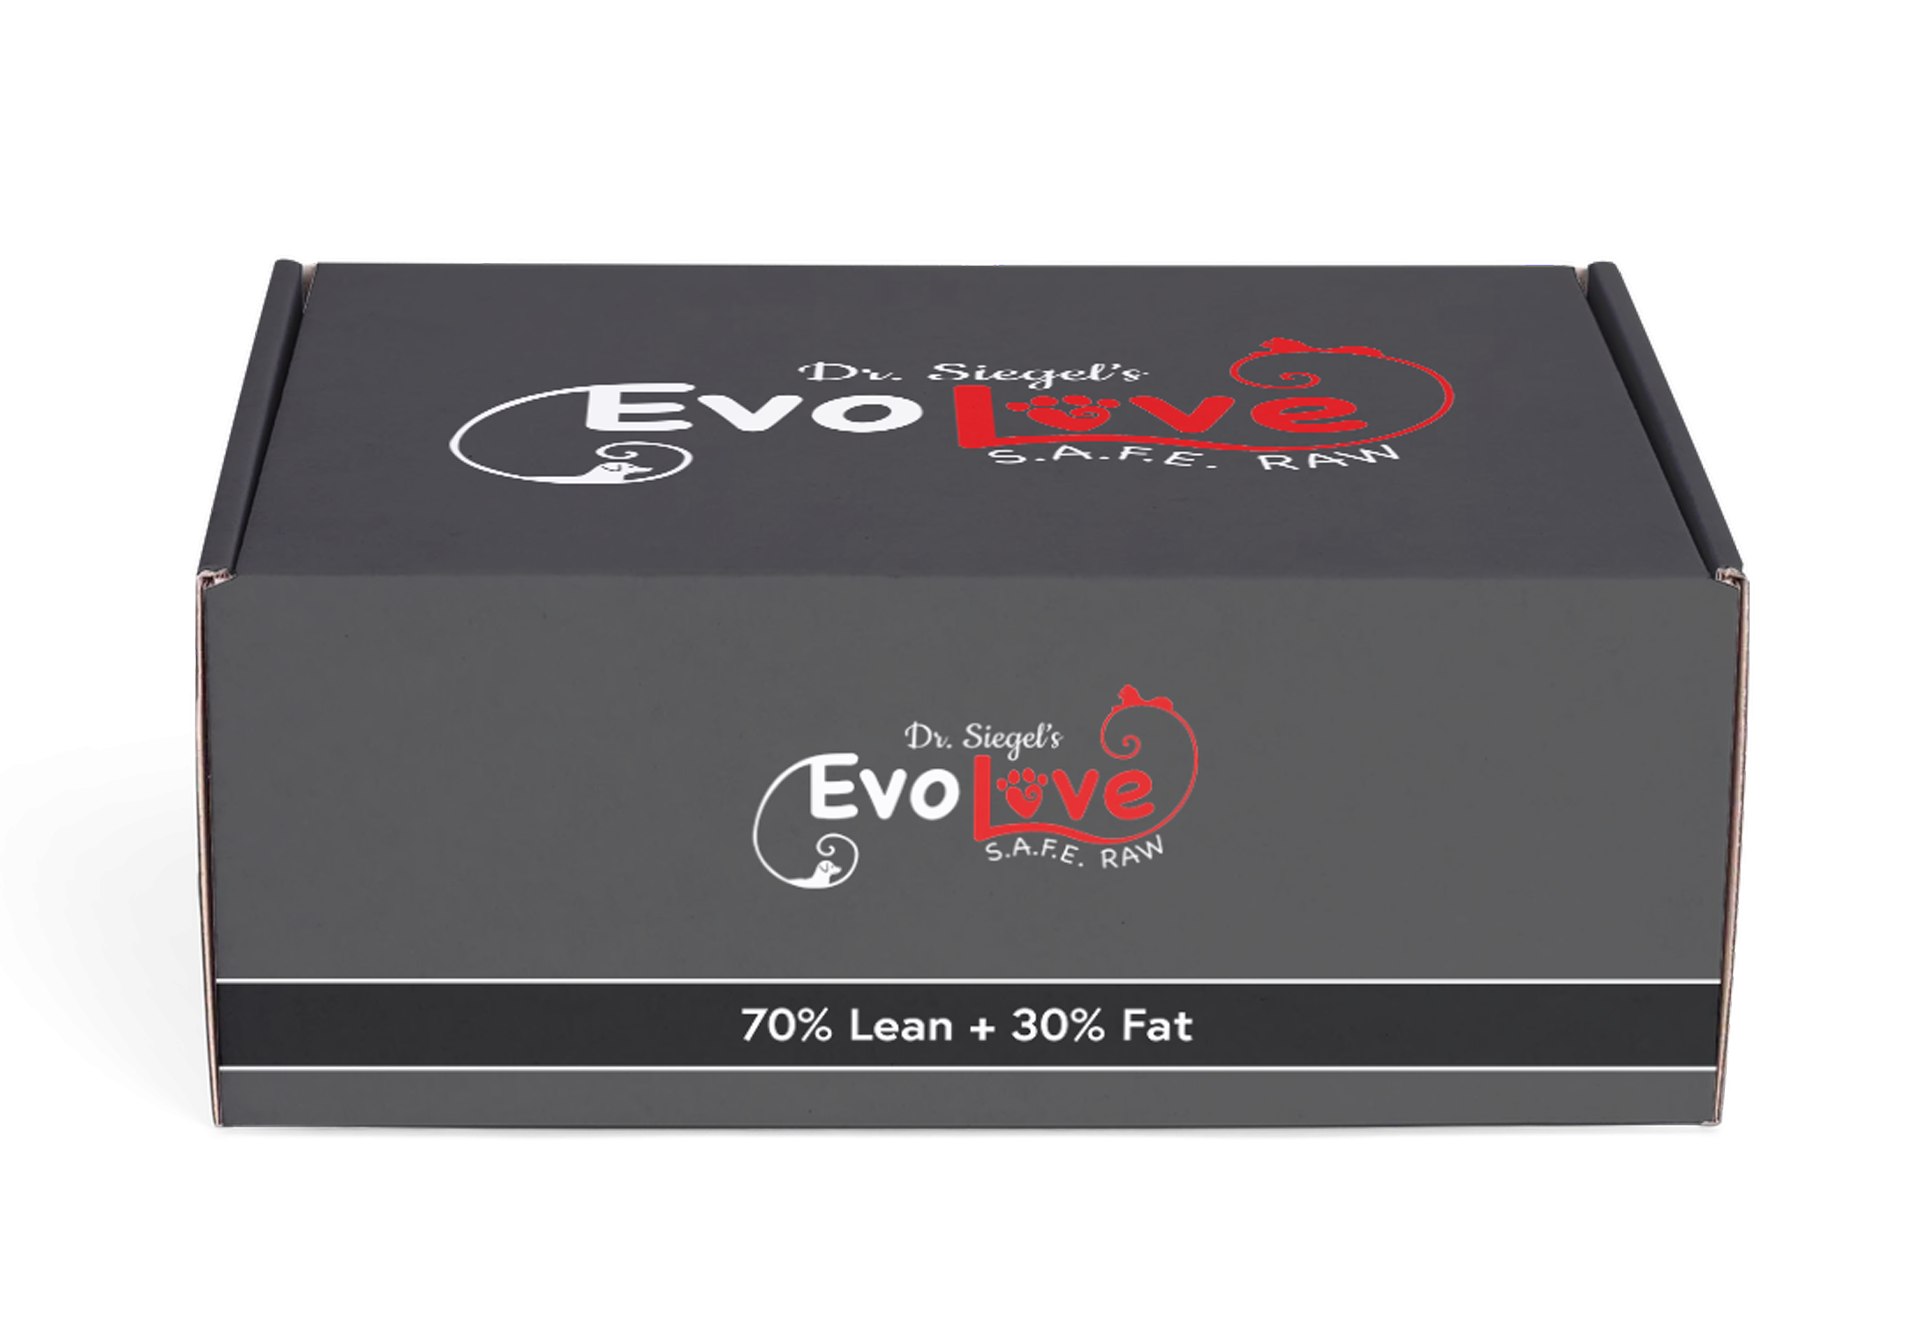 evolove-raw-products-7030-trans